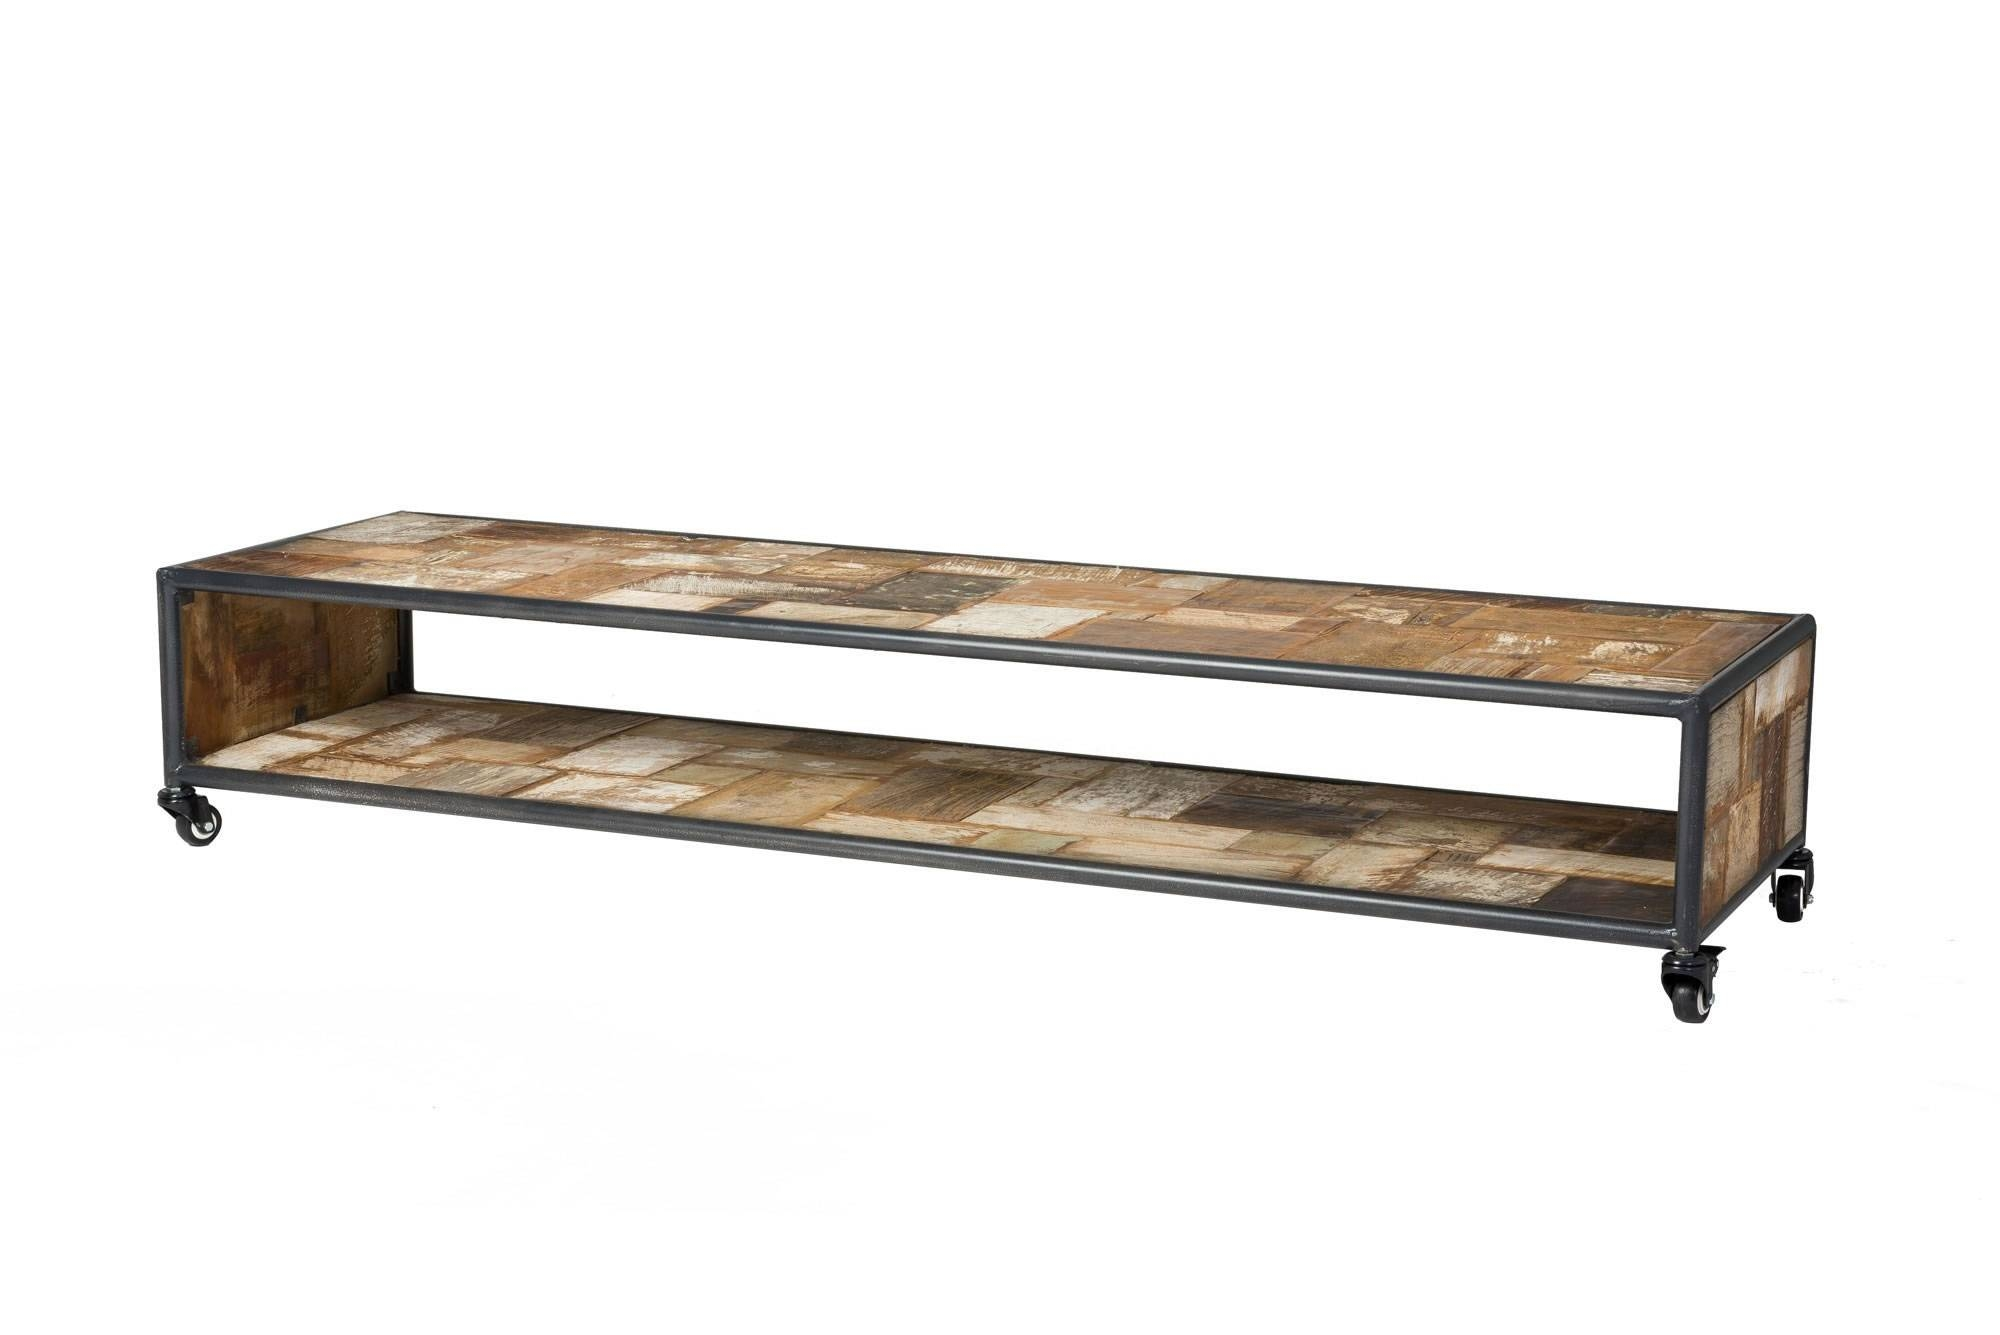 Lh Imports D-Bodhi Pure Coffee Table - Disc-Lh-Dba34 | Modern pertaining to Buddha Coffee Tables (Image 24 of 30)